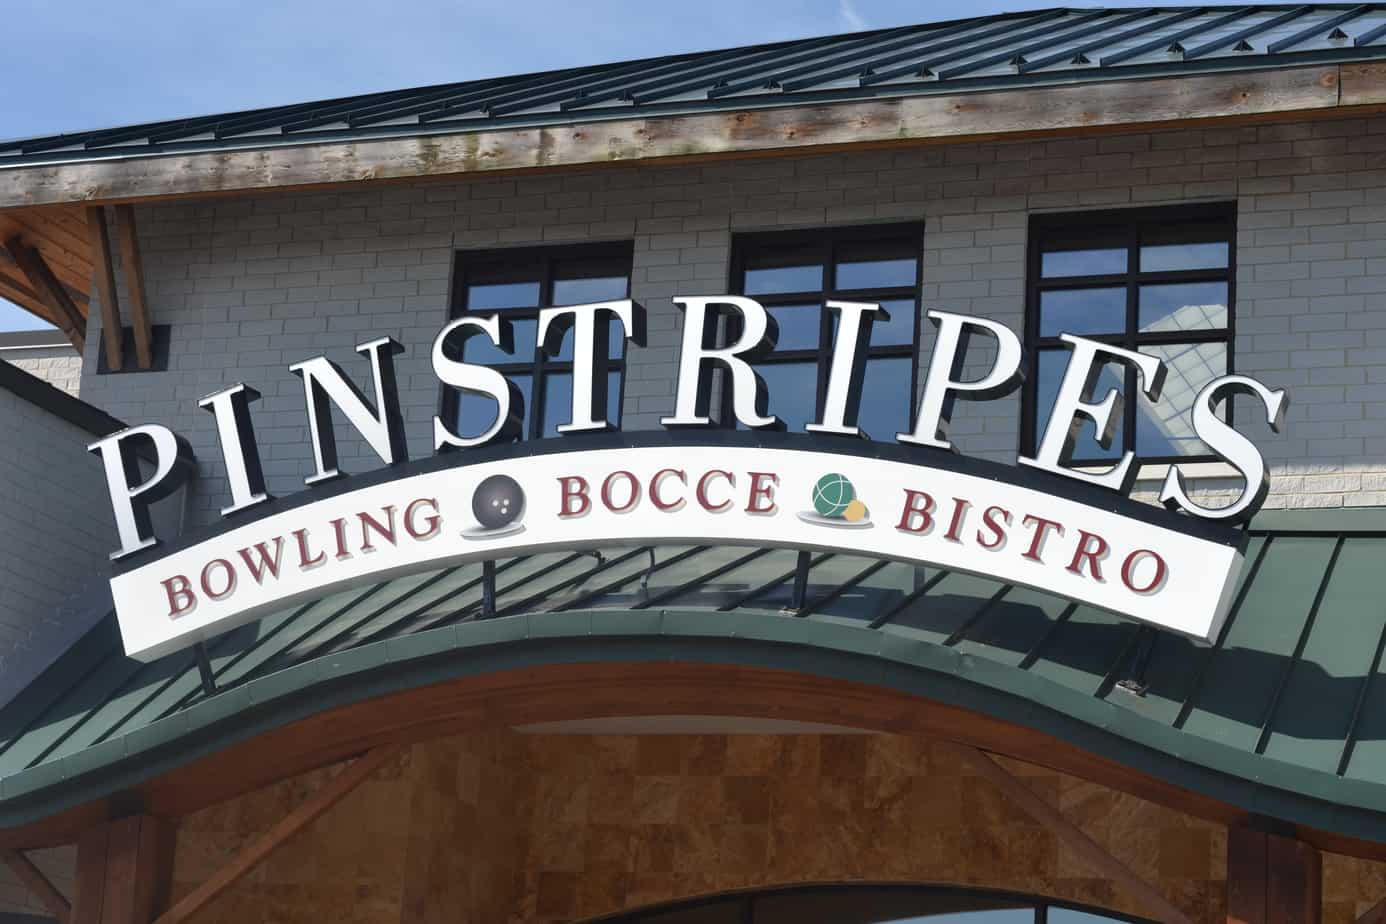 Pinstripes bowling alley provides great family fun!